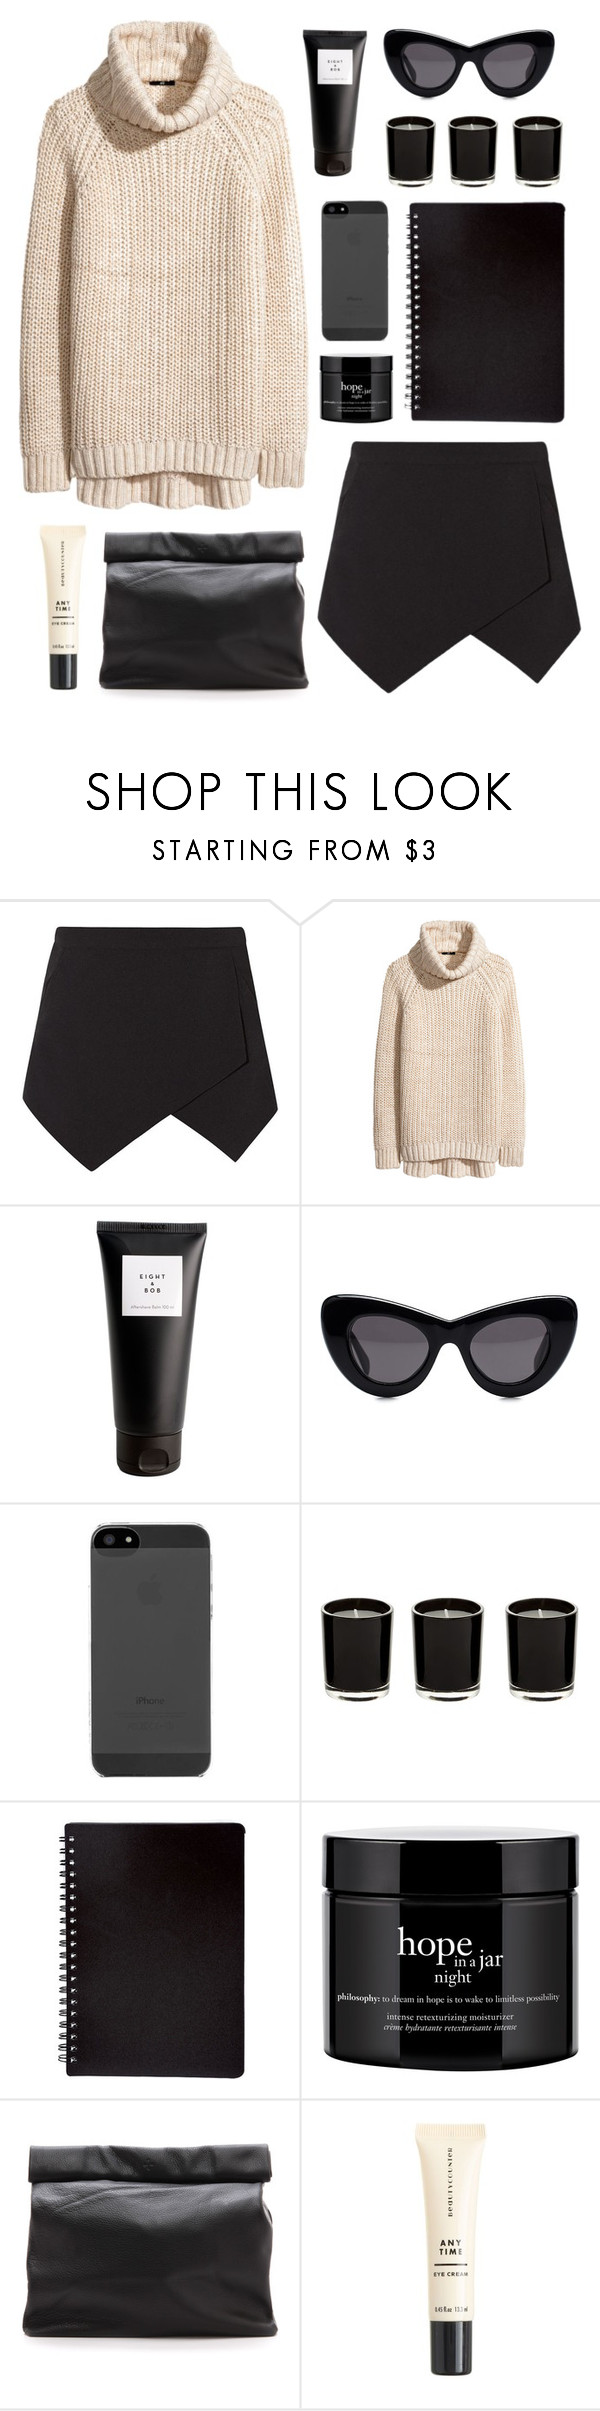 """""""Untitled #2043"""" by katerina-rampota ❤ liked on Polyvore featuring H&M, Eight & Bob, CÉLINE, philosophy, Marie Turnor and J.Crew"""